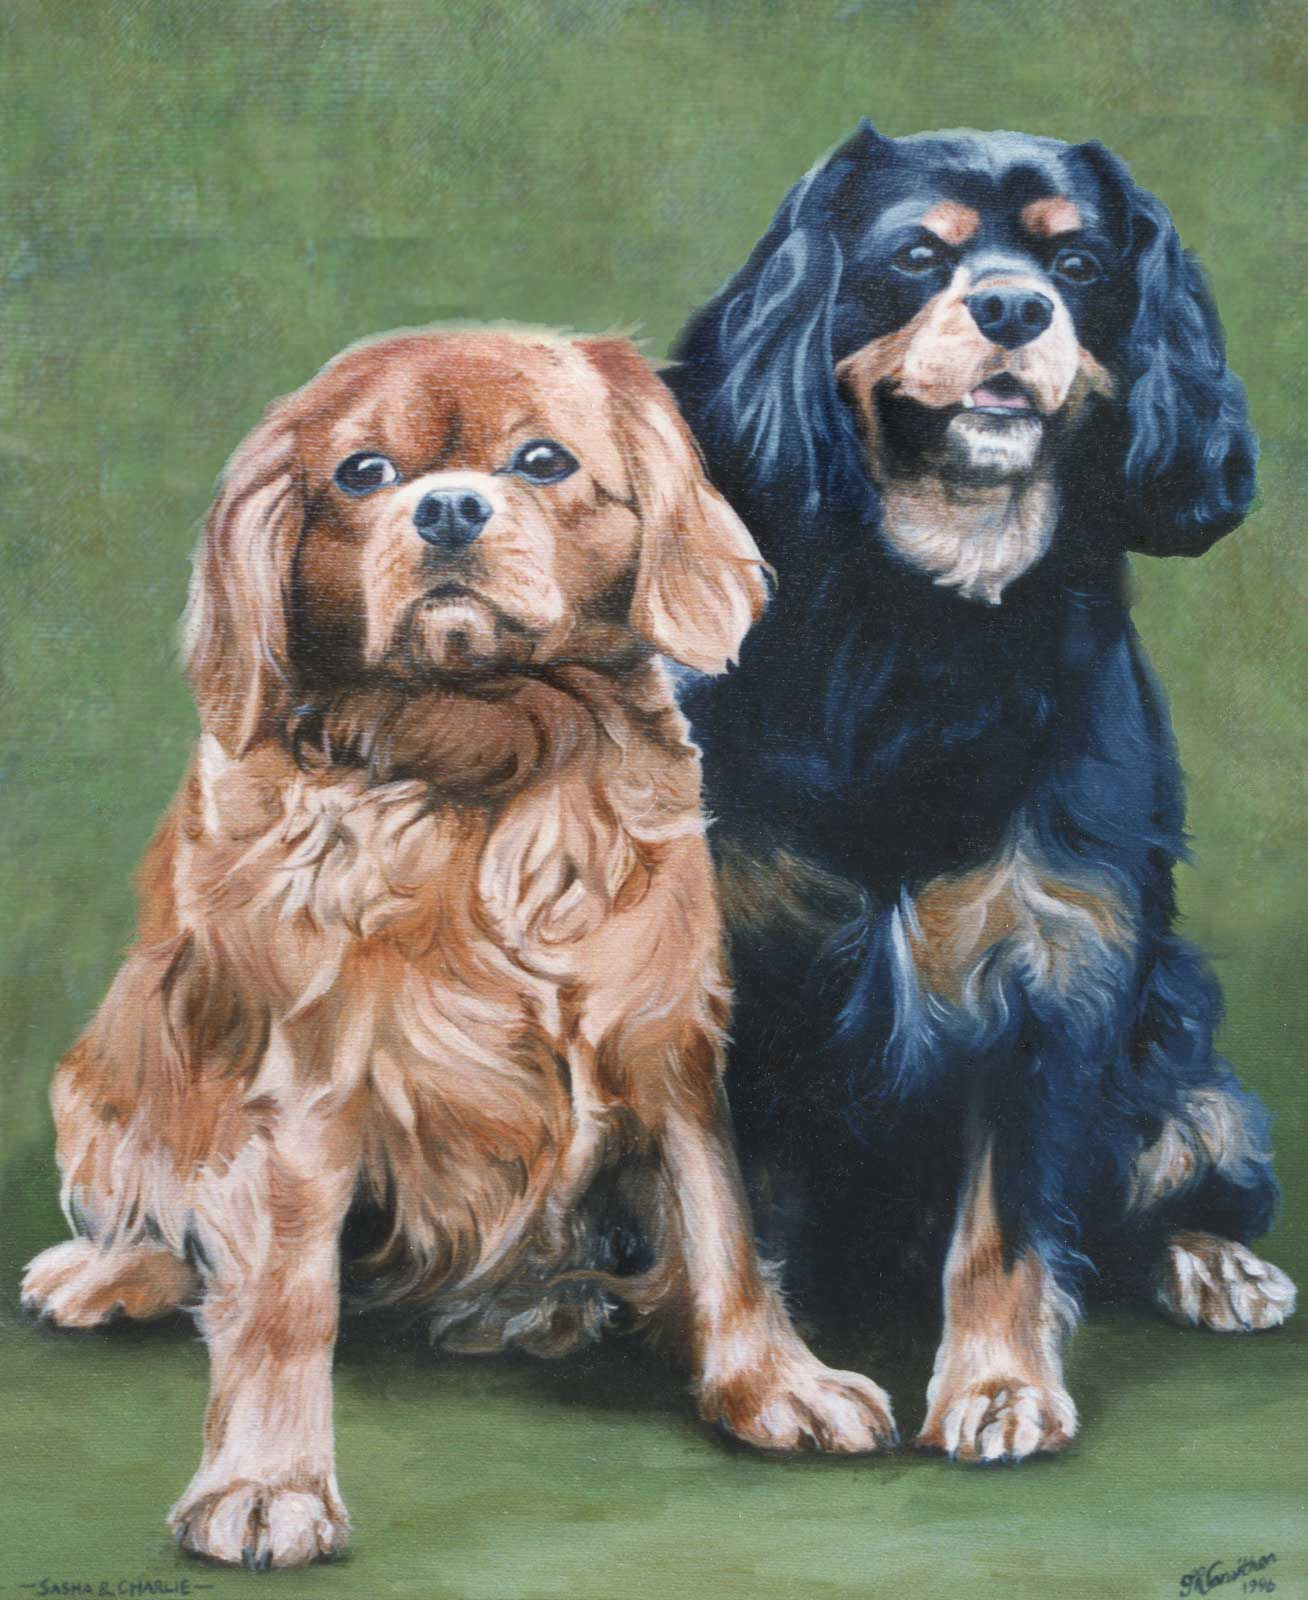 King Charles Spaniels dogs portraits oil painting on canvas